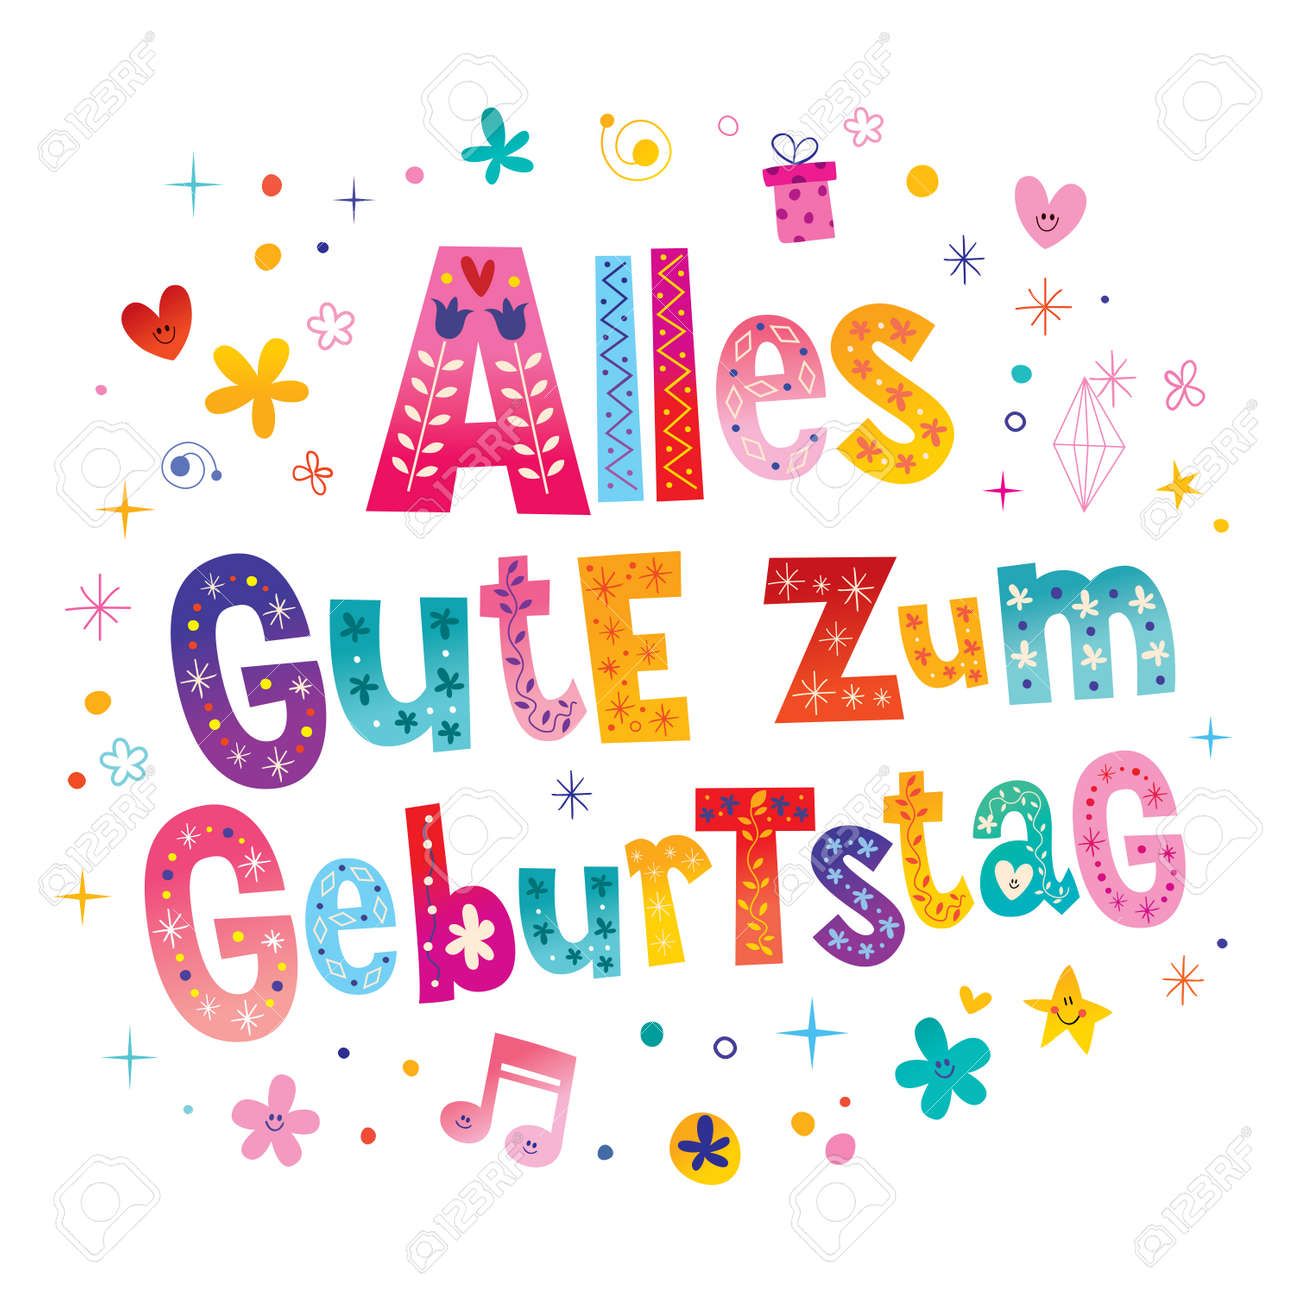 Alles Gute Zum Geburtstag Deutsch German Happy Birthday Greeting Card Stock Vector